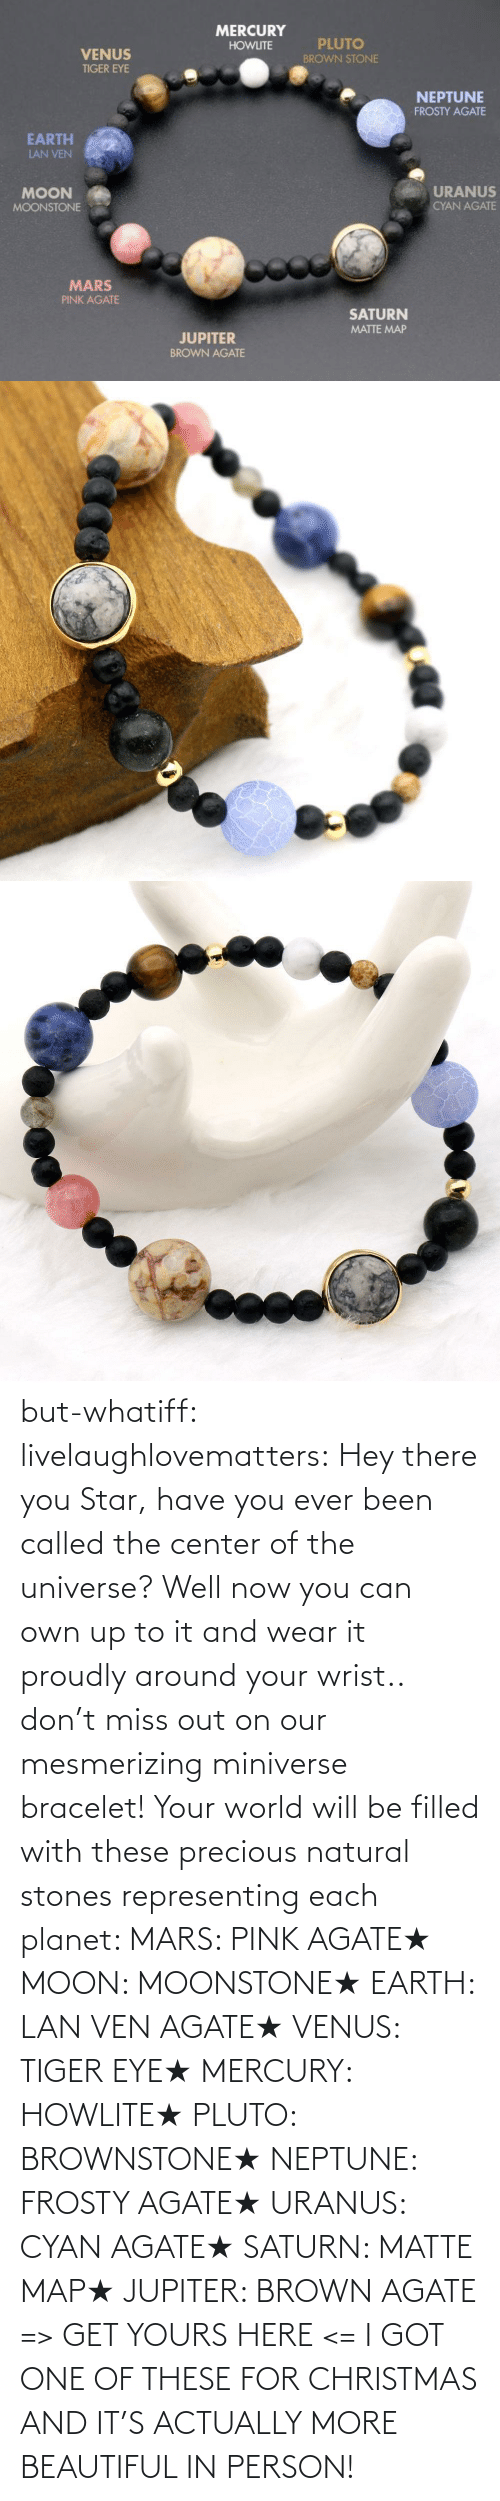 one: but-whatiff:  livelaughlovematters:  Hey there you Star, have you ever been called the center of the universe? Well now you can own up to it and wear it proudly around your wrist.. don't miss out on our mesmerizing miniverse bracelet! Your world will be filled with these precious natural stones representing each planet:  MARS: PINK AGATE★ MOON: MOONSTONE★ EARTH: LAN VEN AGATE★ VENUS: TIGER EYE★ MERCURY: HOWLITE★ PLUTO: BROWNSTONE★ NEPTUNE: FROSTY AGATE★ URANUS: CYAN AGATE★ SATURN: MATTE MAP★ JUPITER: BROWN AGATE => GET YOURS HERE <=  I GOT ONE OF THESE FOR CHRISTMAS AND IT'S ACTUALLY MORE BEAUTIFUL IN PERSON!